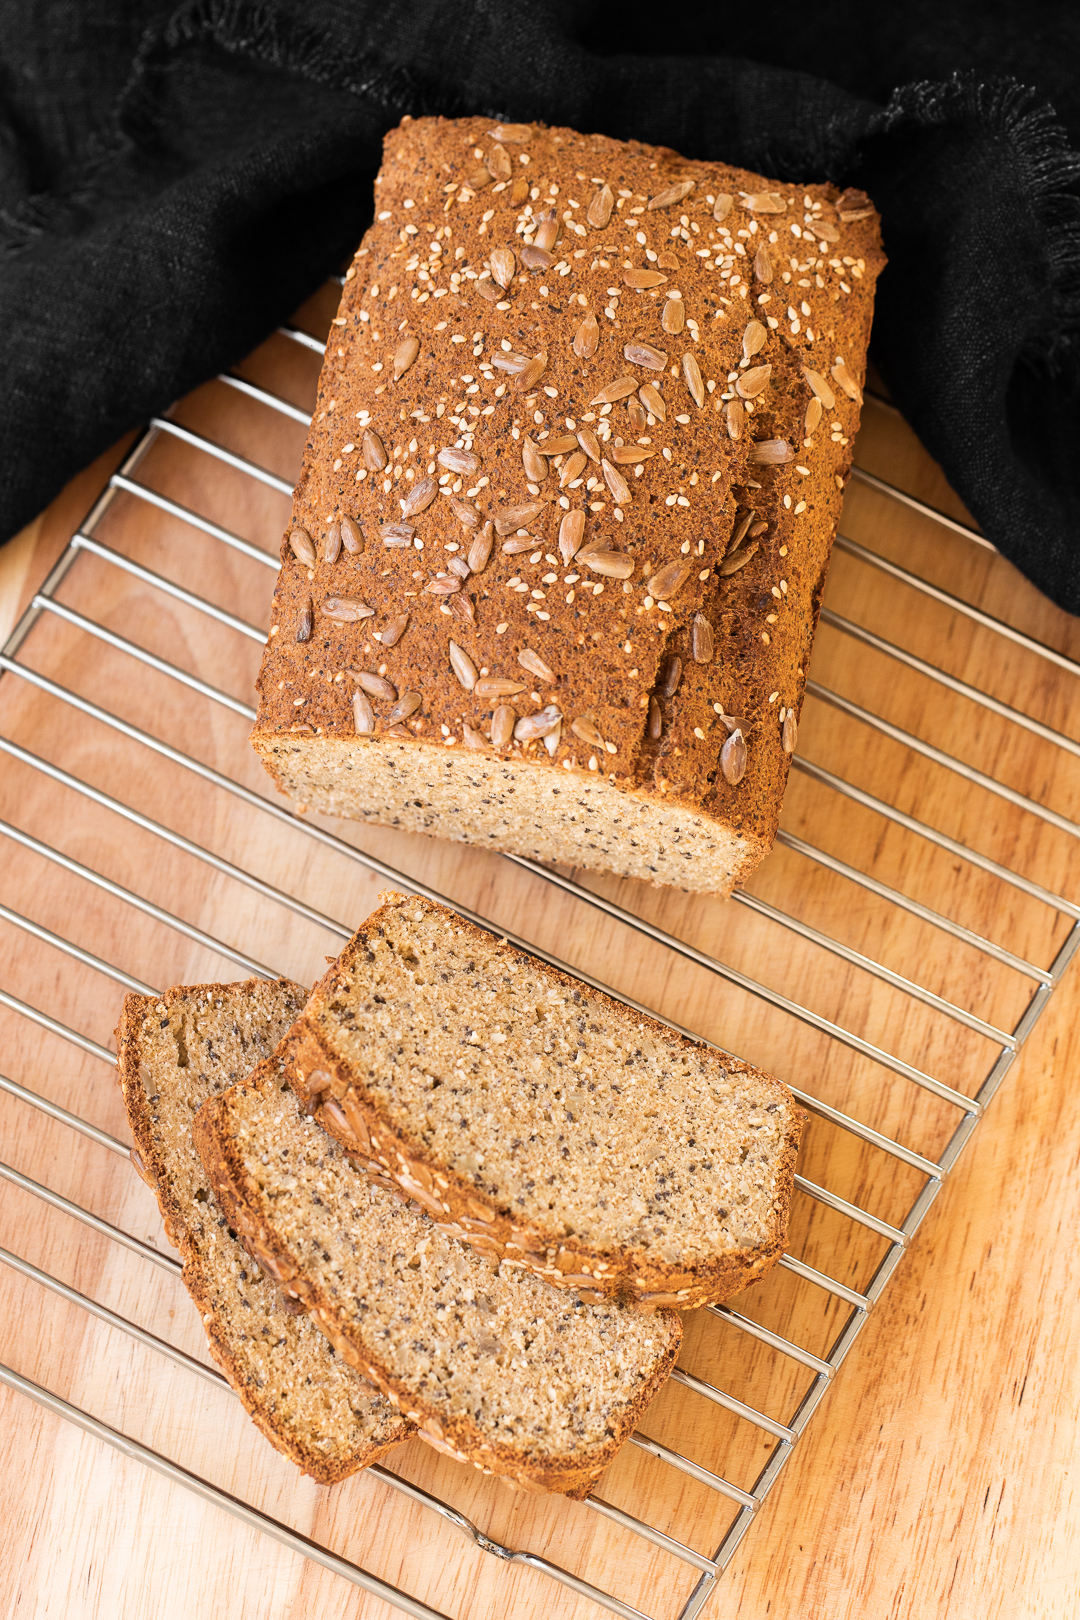 Low_Carb_Seedy_Gut_Loaf_by_Jordan_Pie_Nutritionist_Photographer-3.jpg